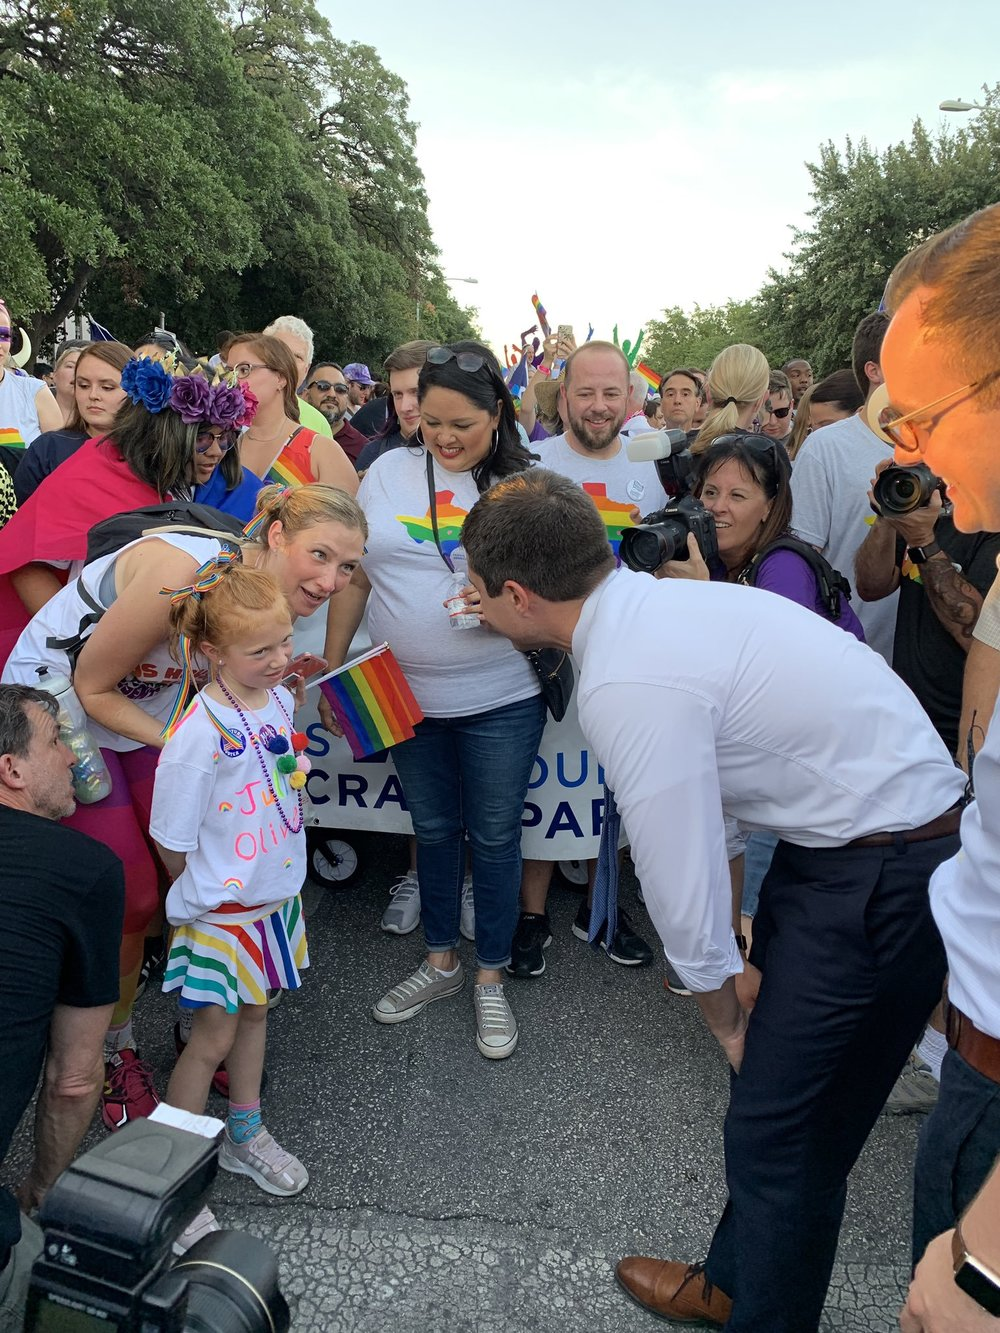 Pete Buttigieg at the Austin Pride Parade, Posted on Twitter by Ninasophia81